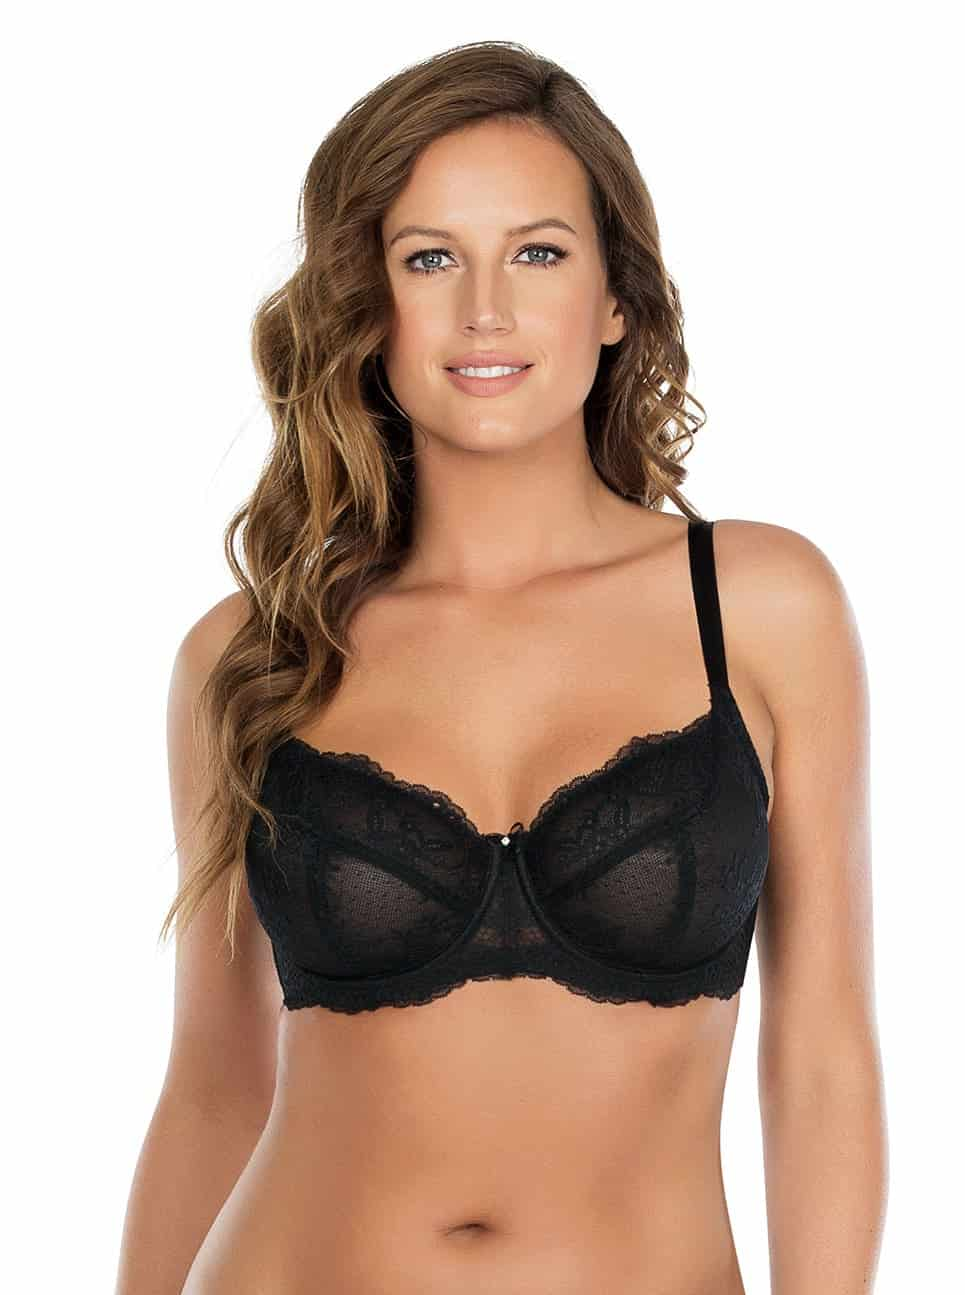 Sandrine UnlinedWireBrap5352 Black Front copy - Sandrine Unlined Wire Bra - Black - P5352